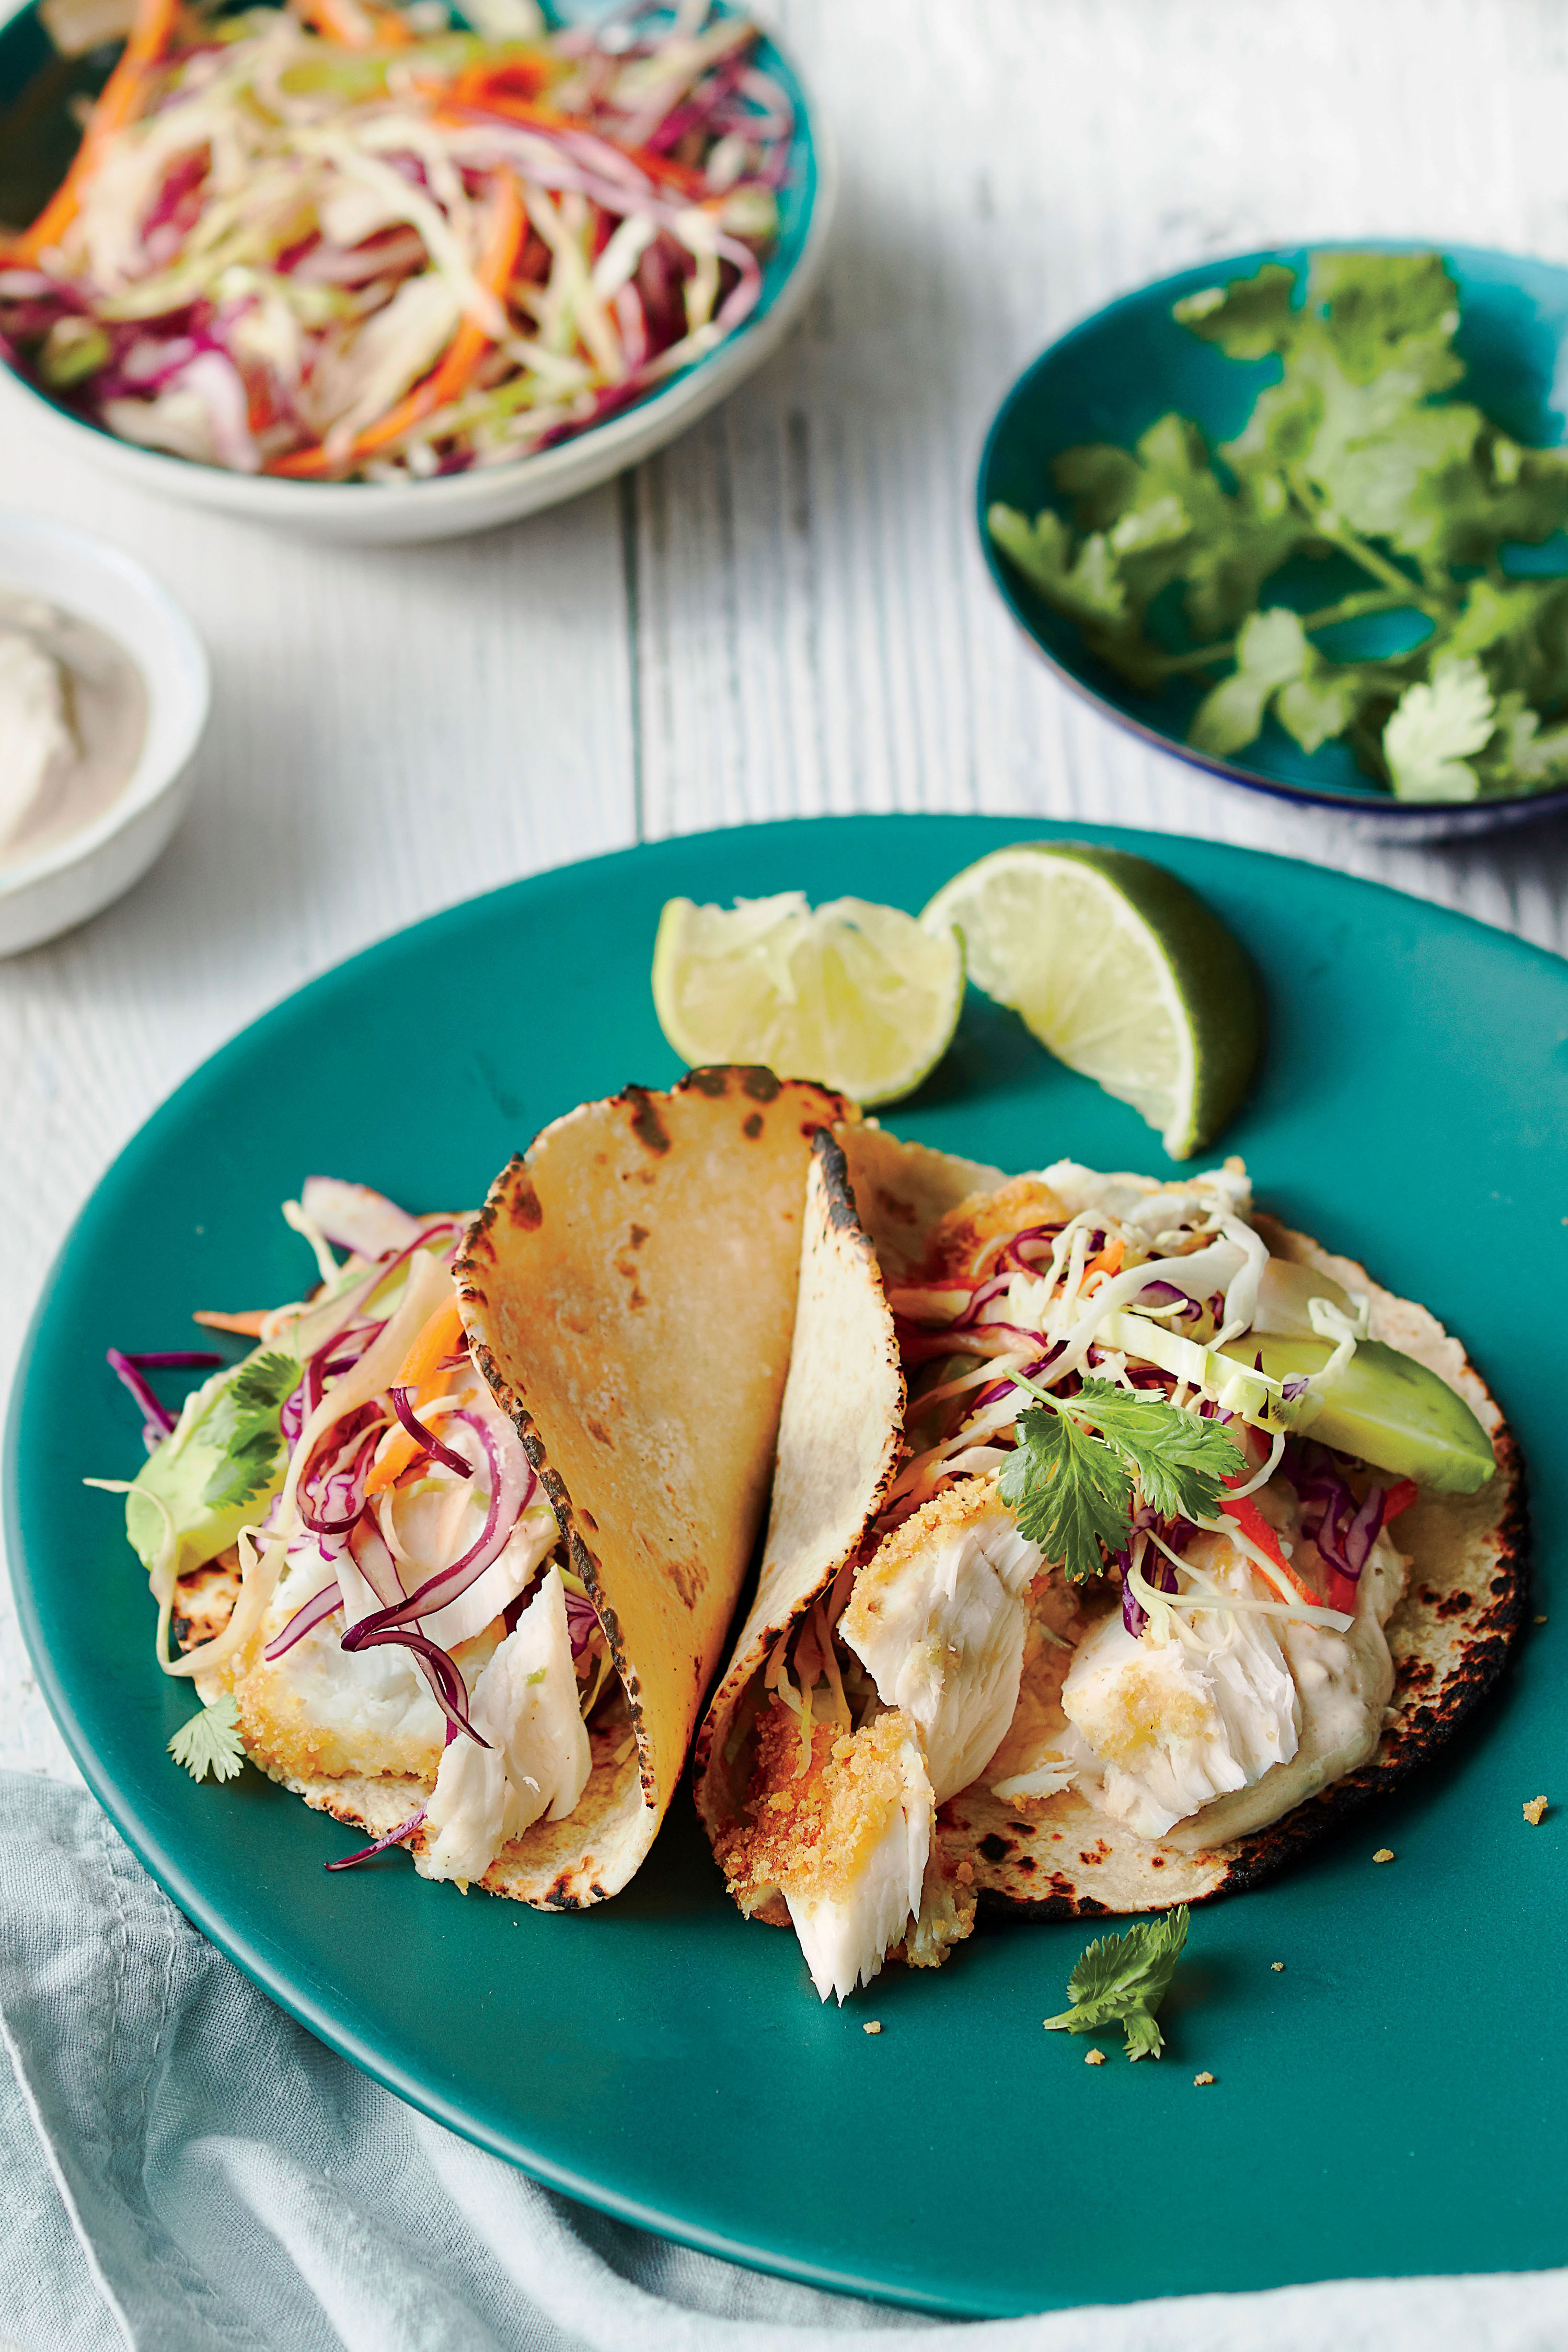 Easy Fish Tacos That Taste Great (Even Without the Seasoning!)